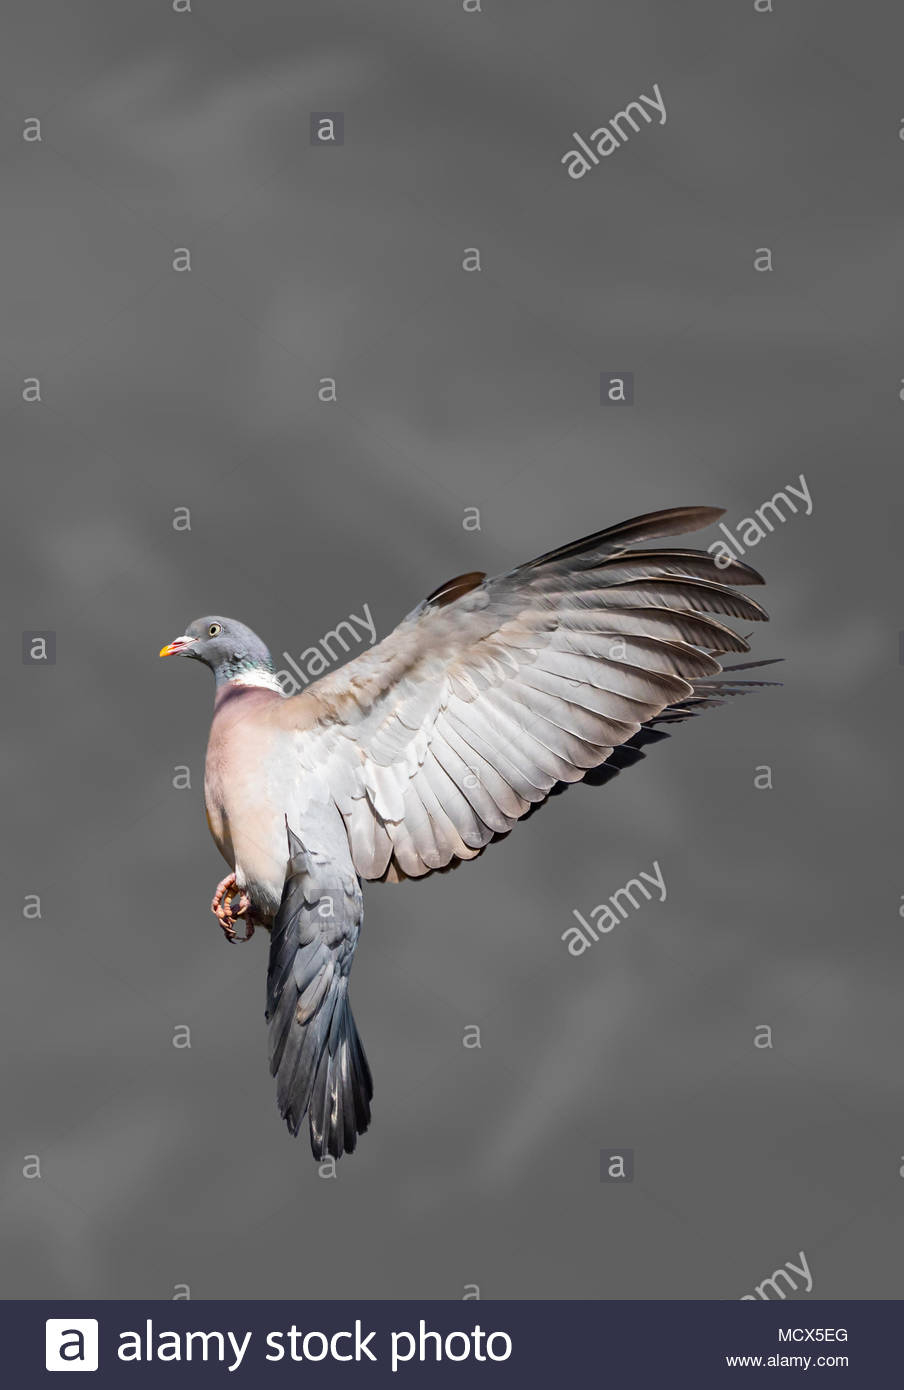 Wood Pigeon bird hovering in midair in an upright pose with its wings stretched backwards. Stopped in time. Frozen in time & space concept. Copyspace. - Stock Image